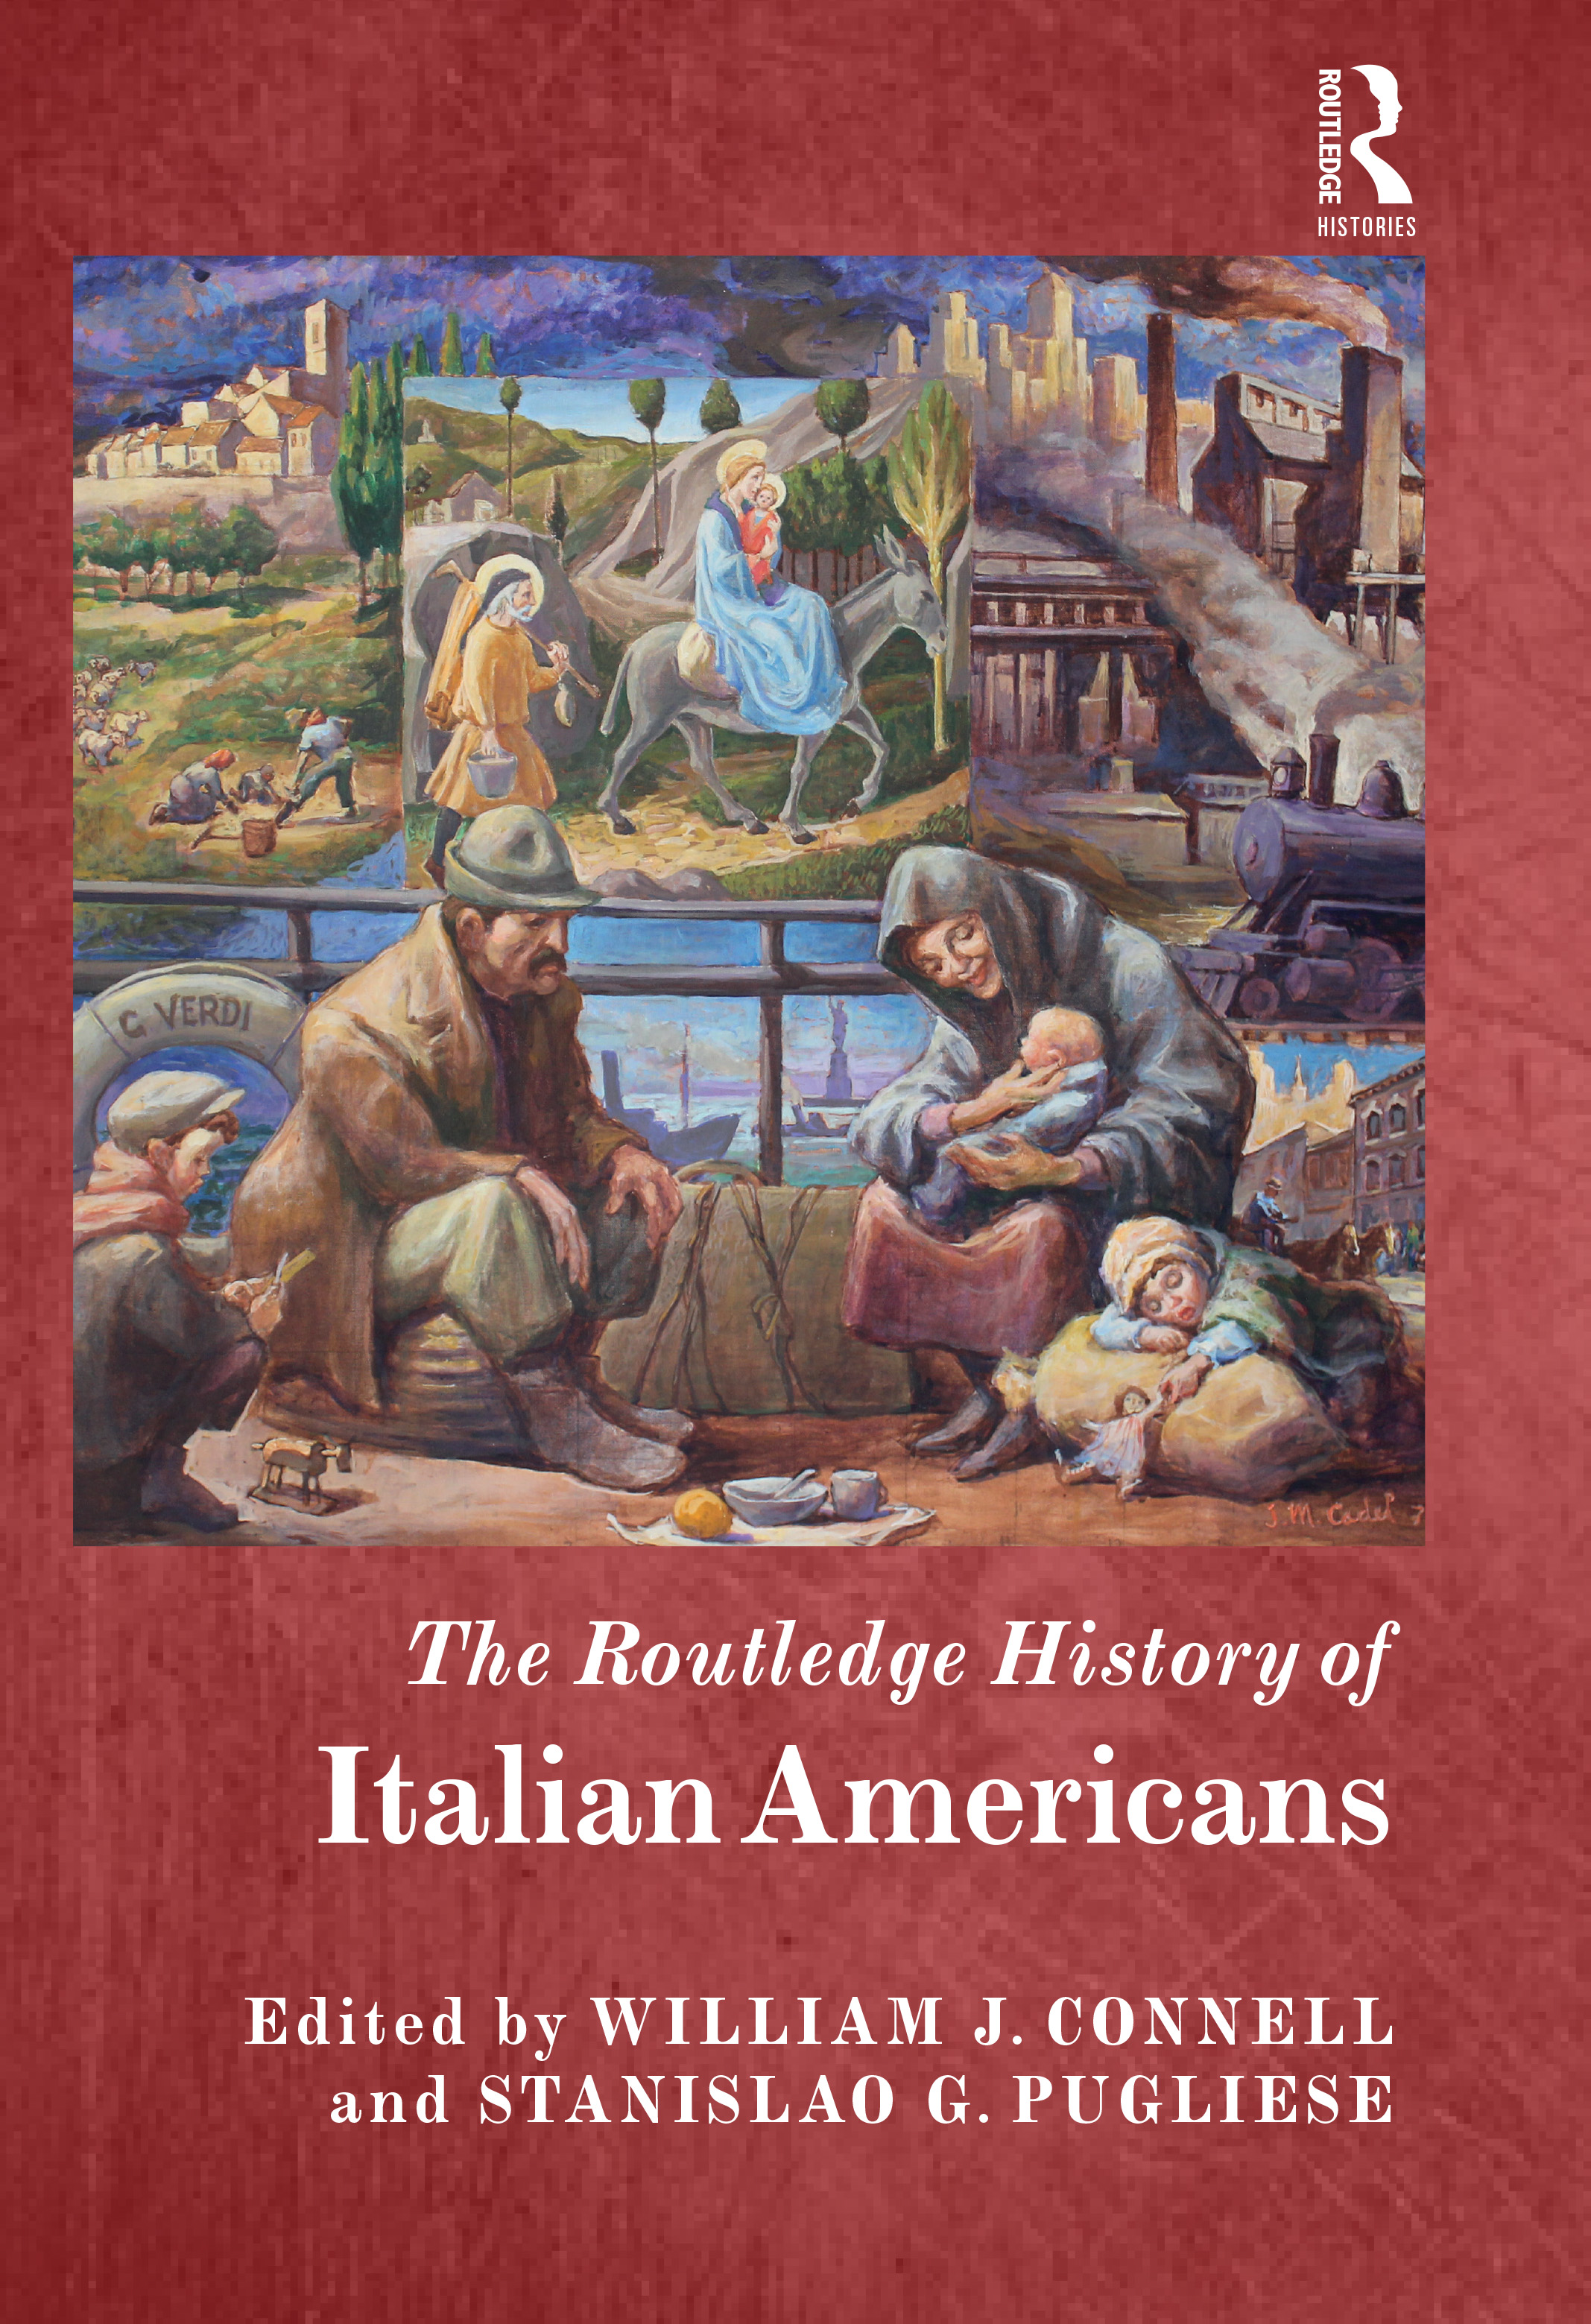 Italian American: Dr. Pugliese Publishes New Book – News